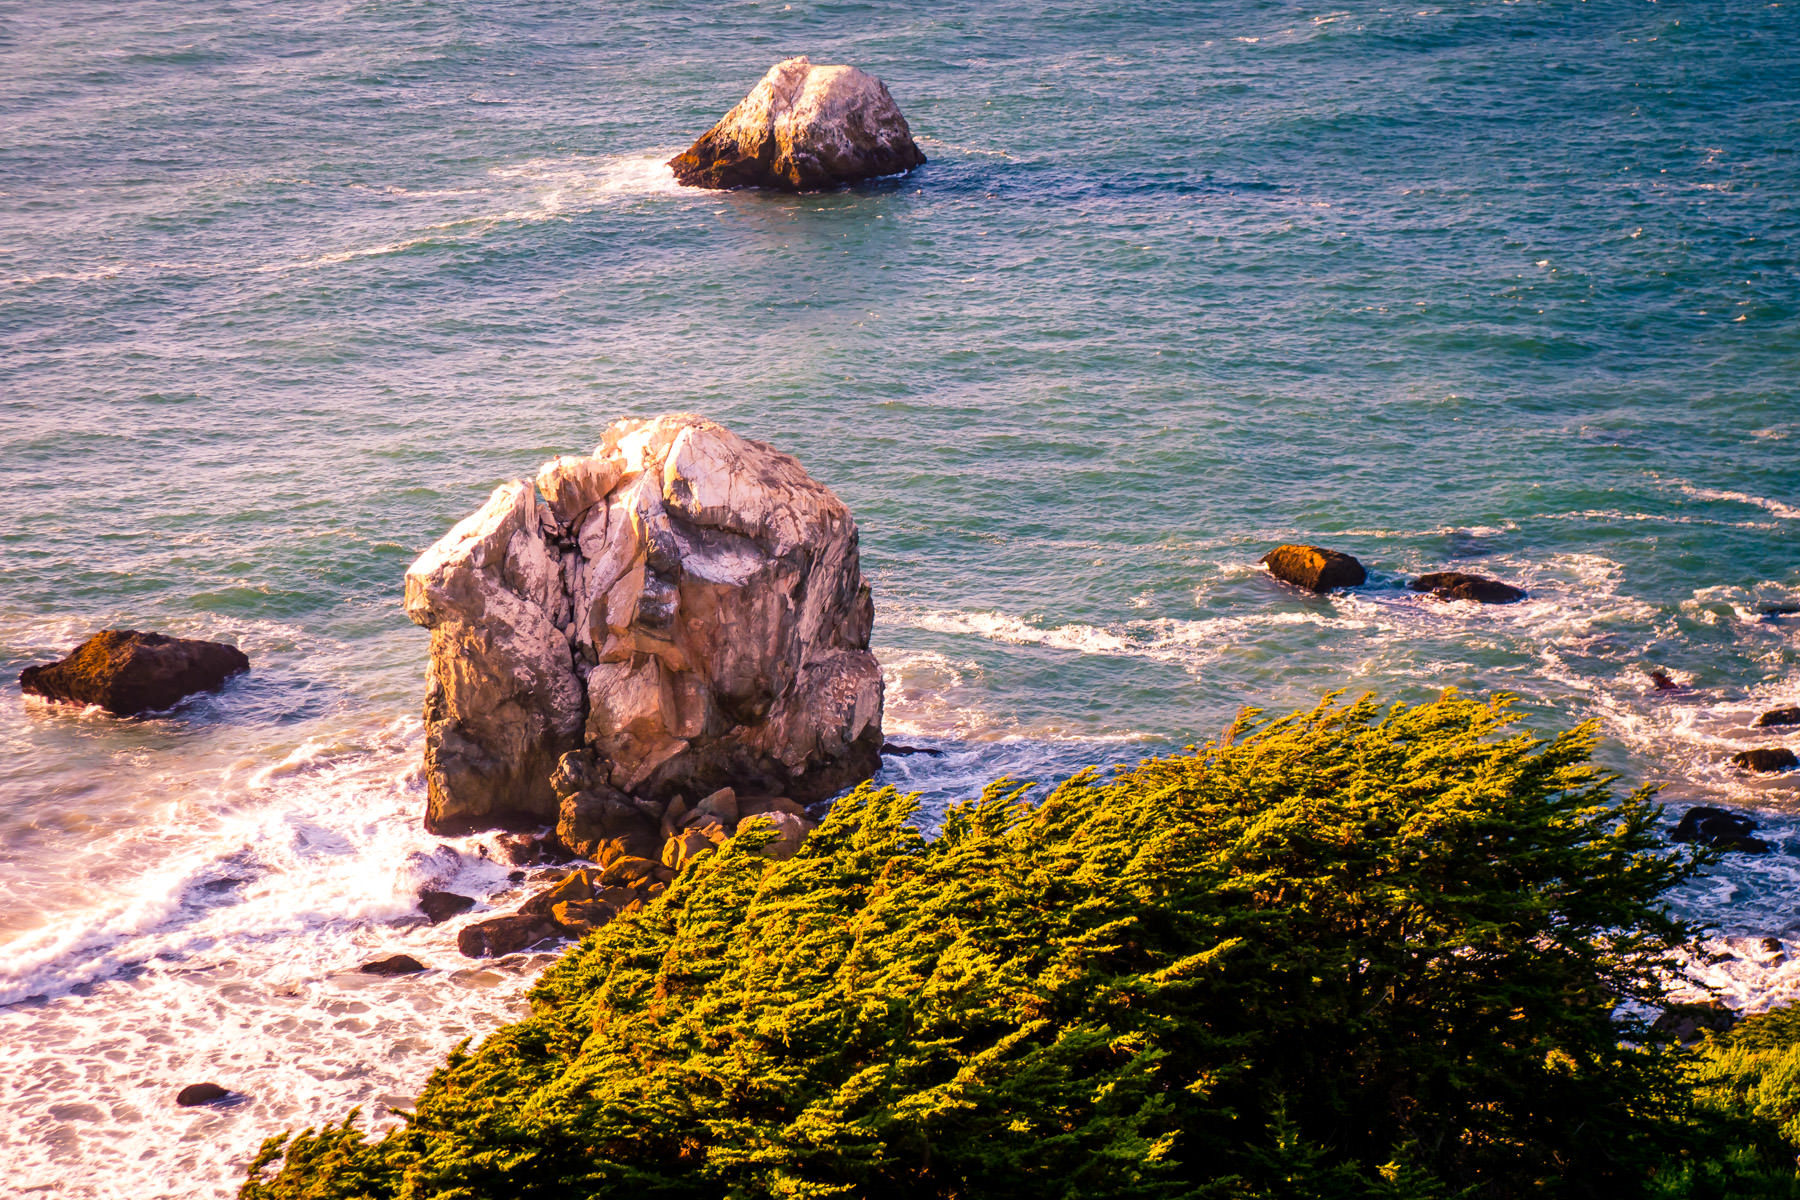 Trees growing on nearby cliffs overlook rocks in the surf below at San Francisco's Lands End.